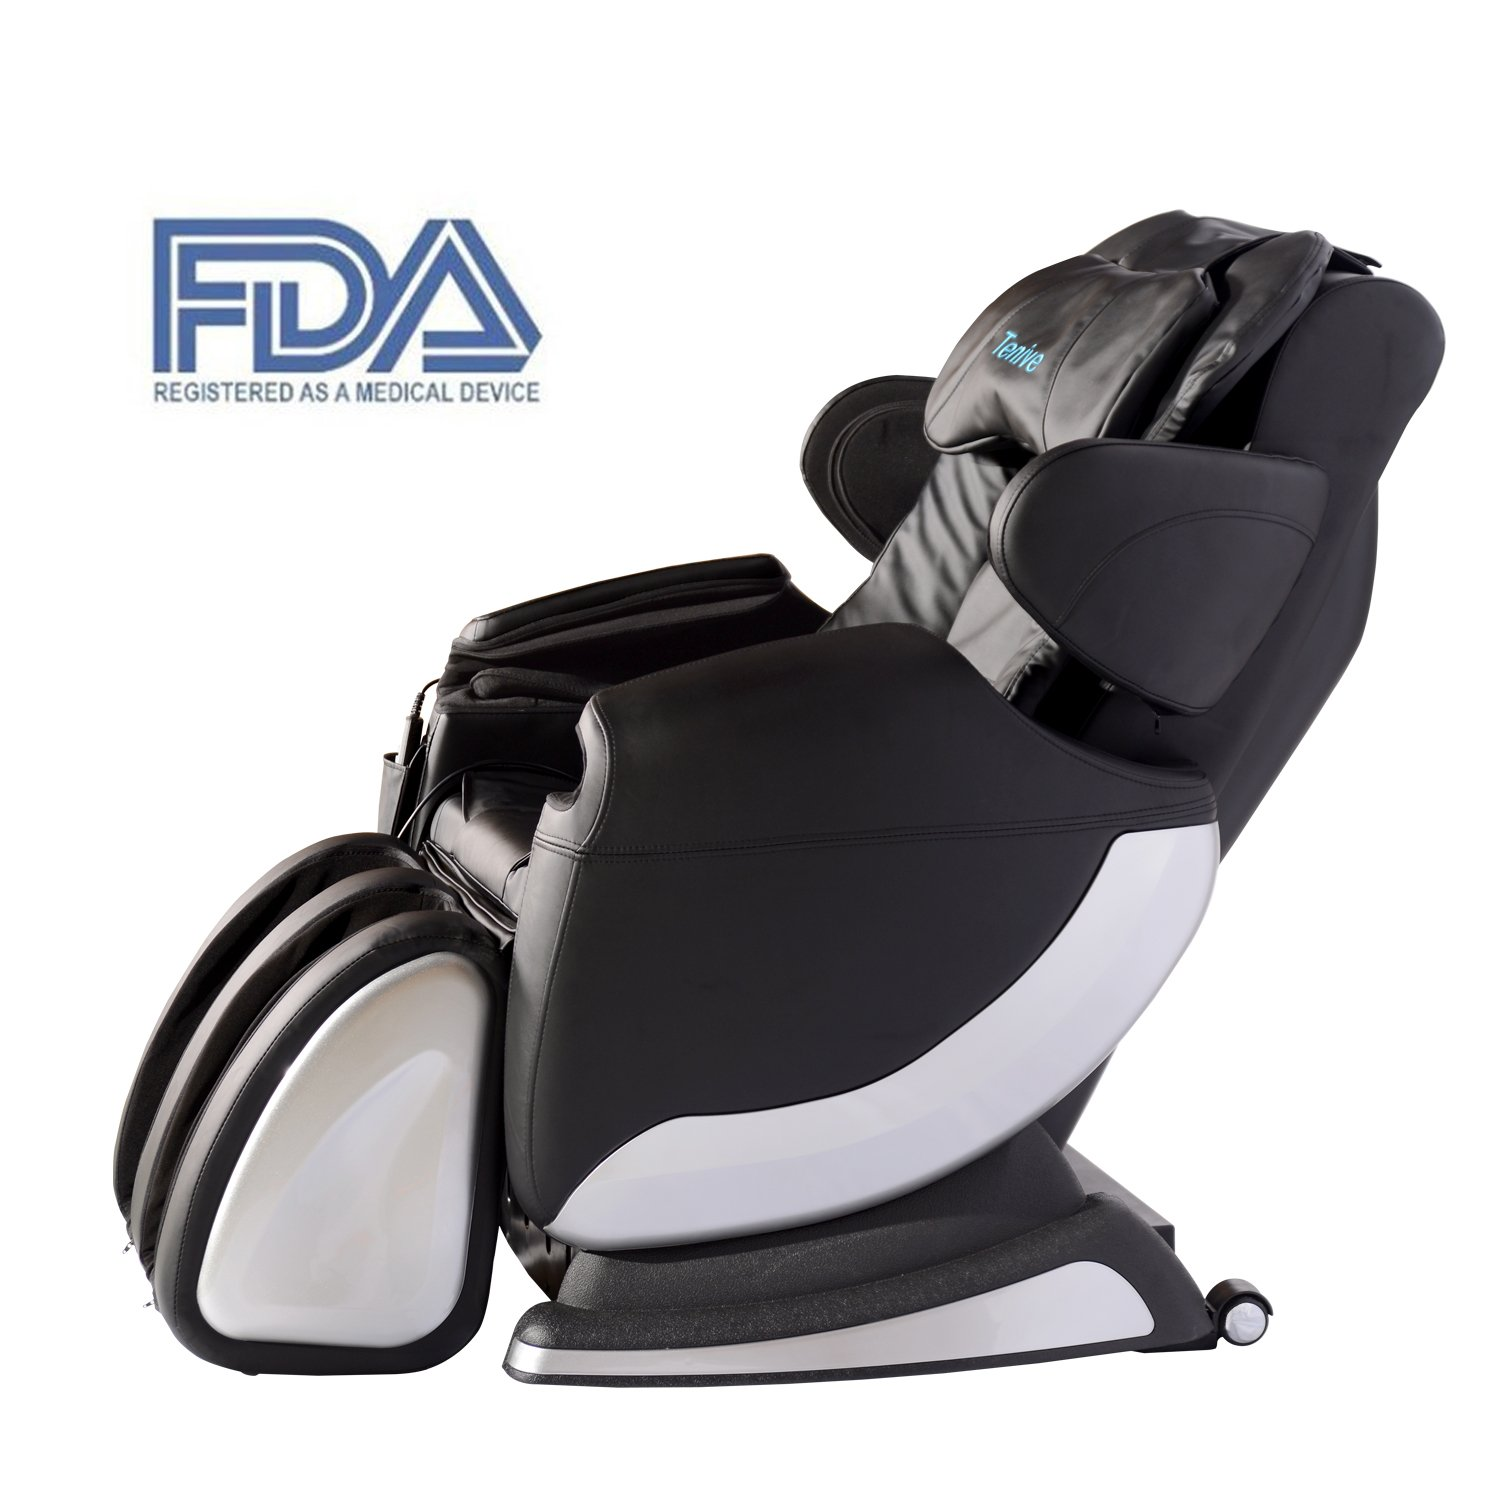 enive Full Body Zero Gravity Shiatsu Massage Chair with built Heating Therapy and Air Massage System